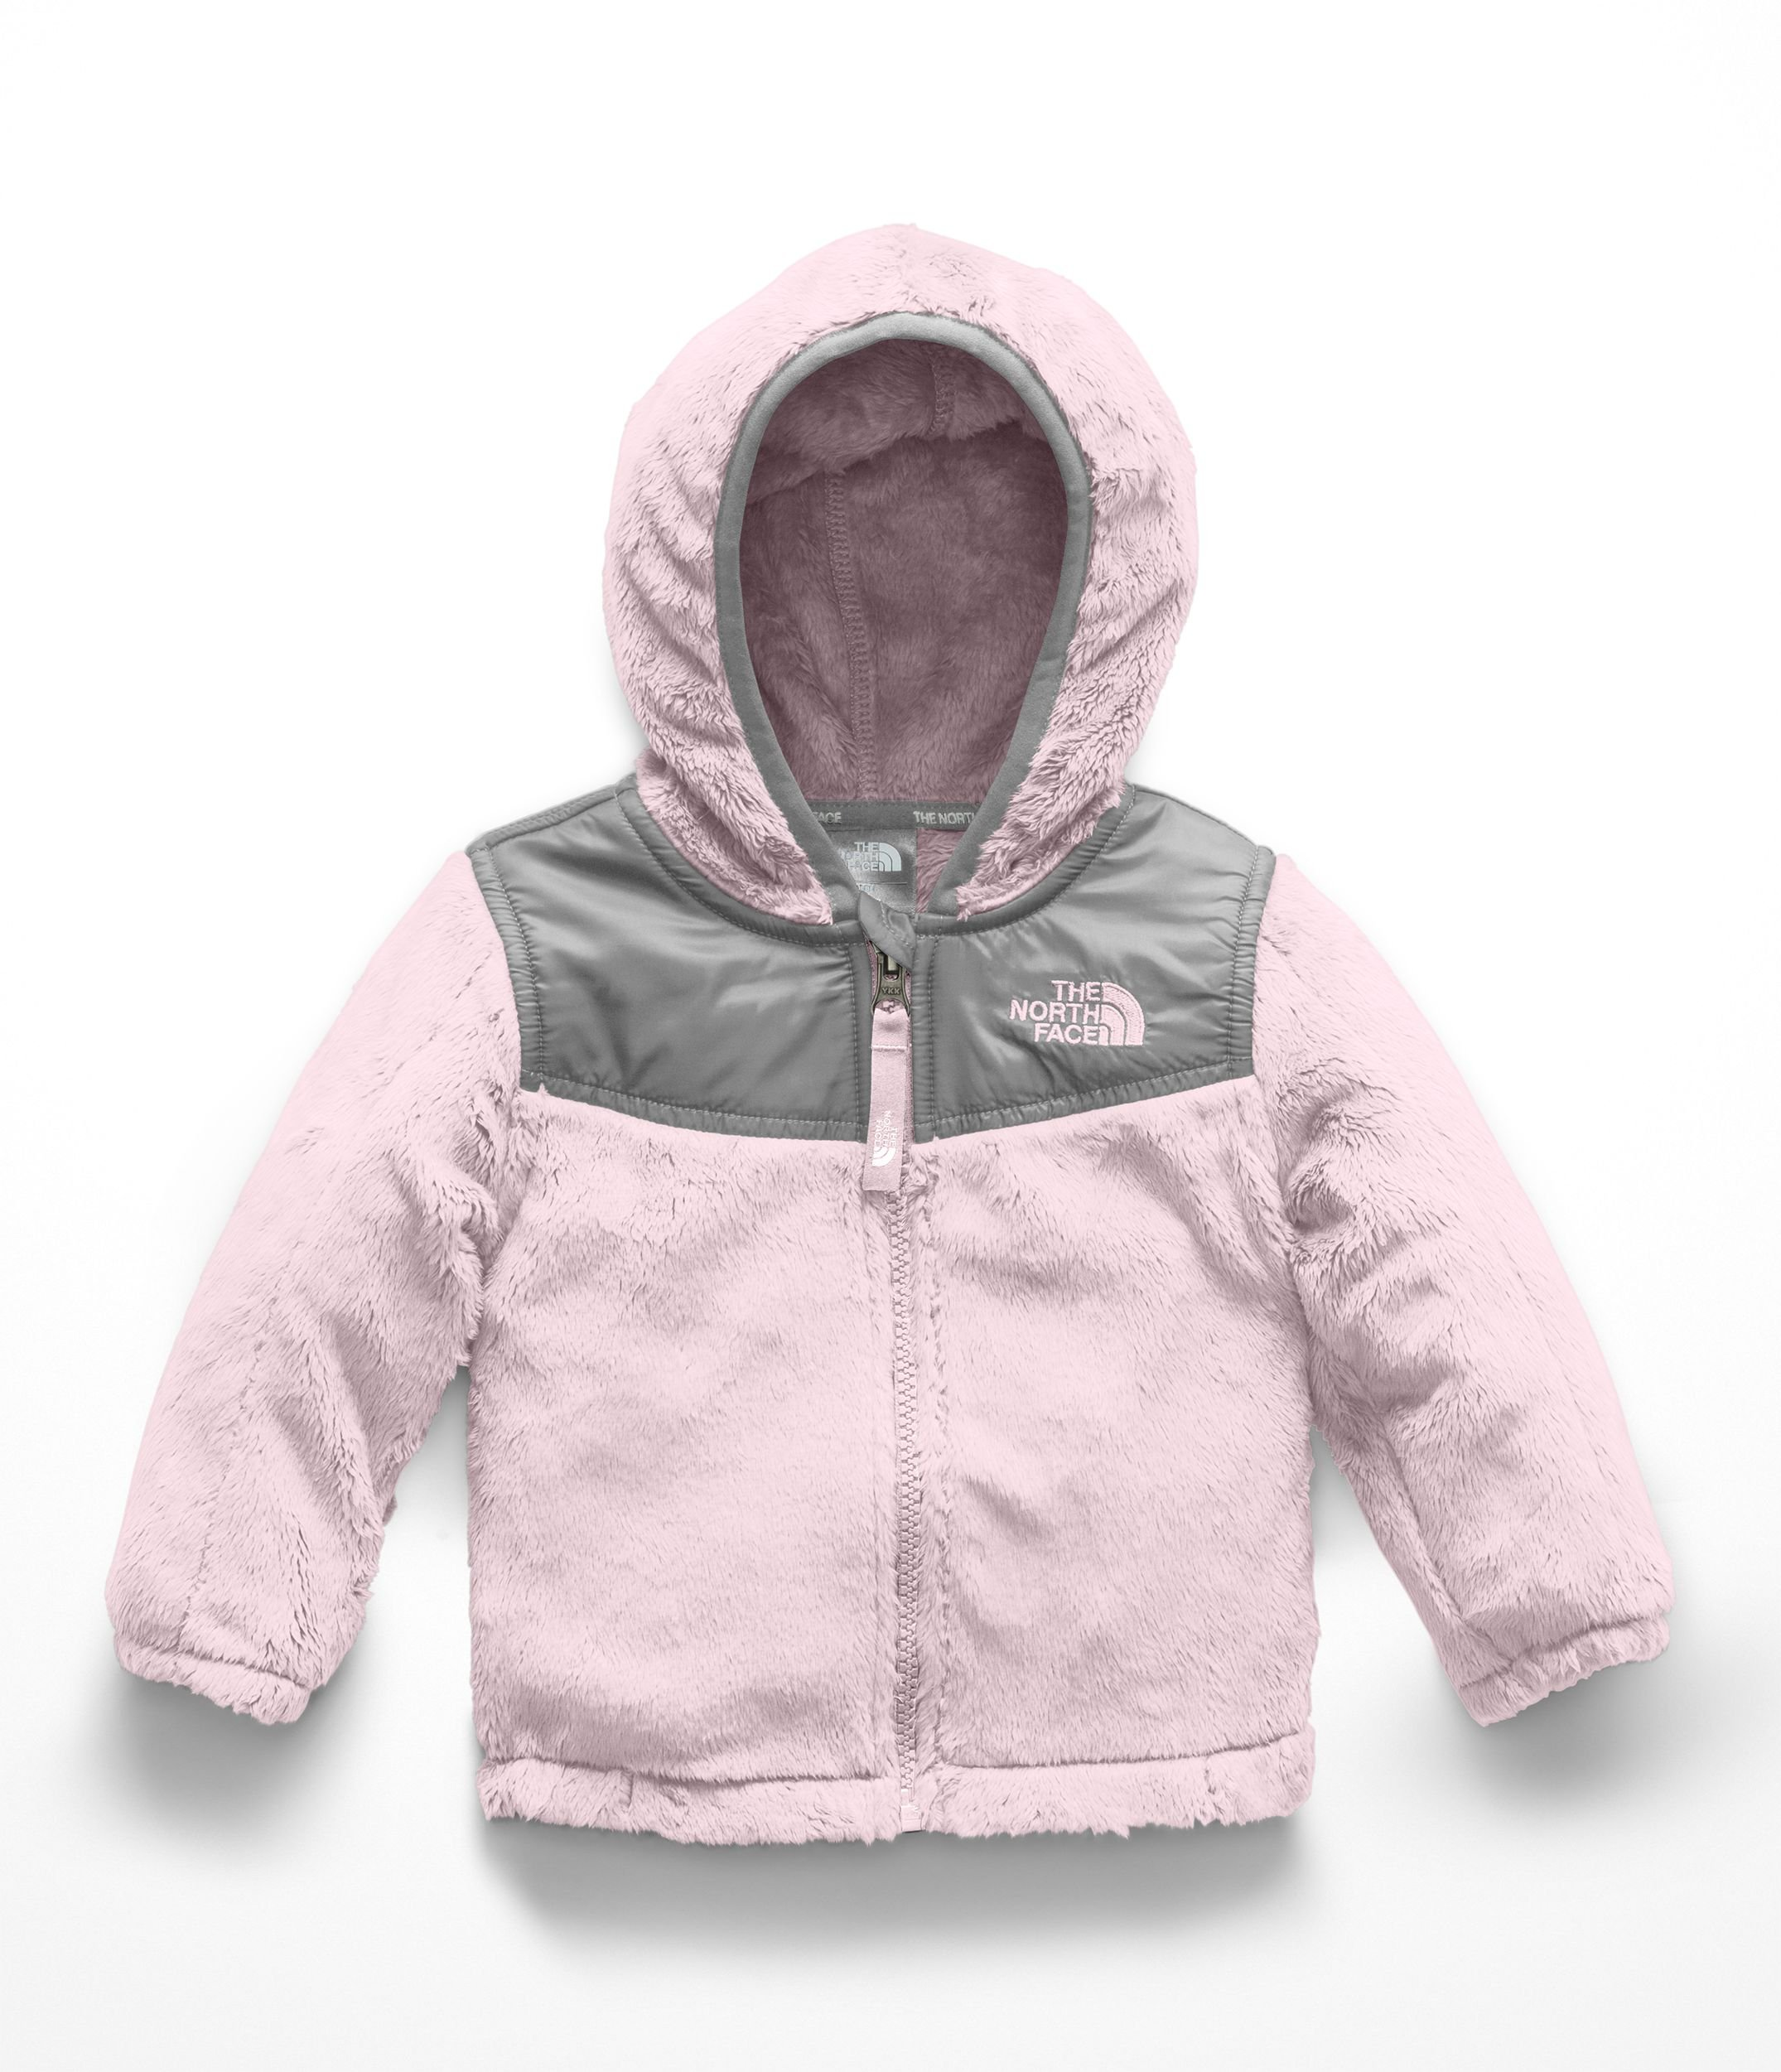 The North Face Infant OSO Hoodie - Purdy Pink - 24M